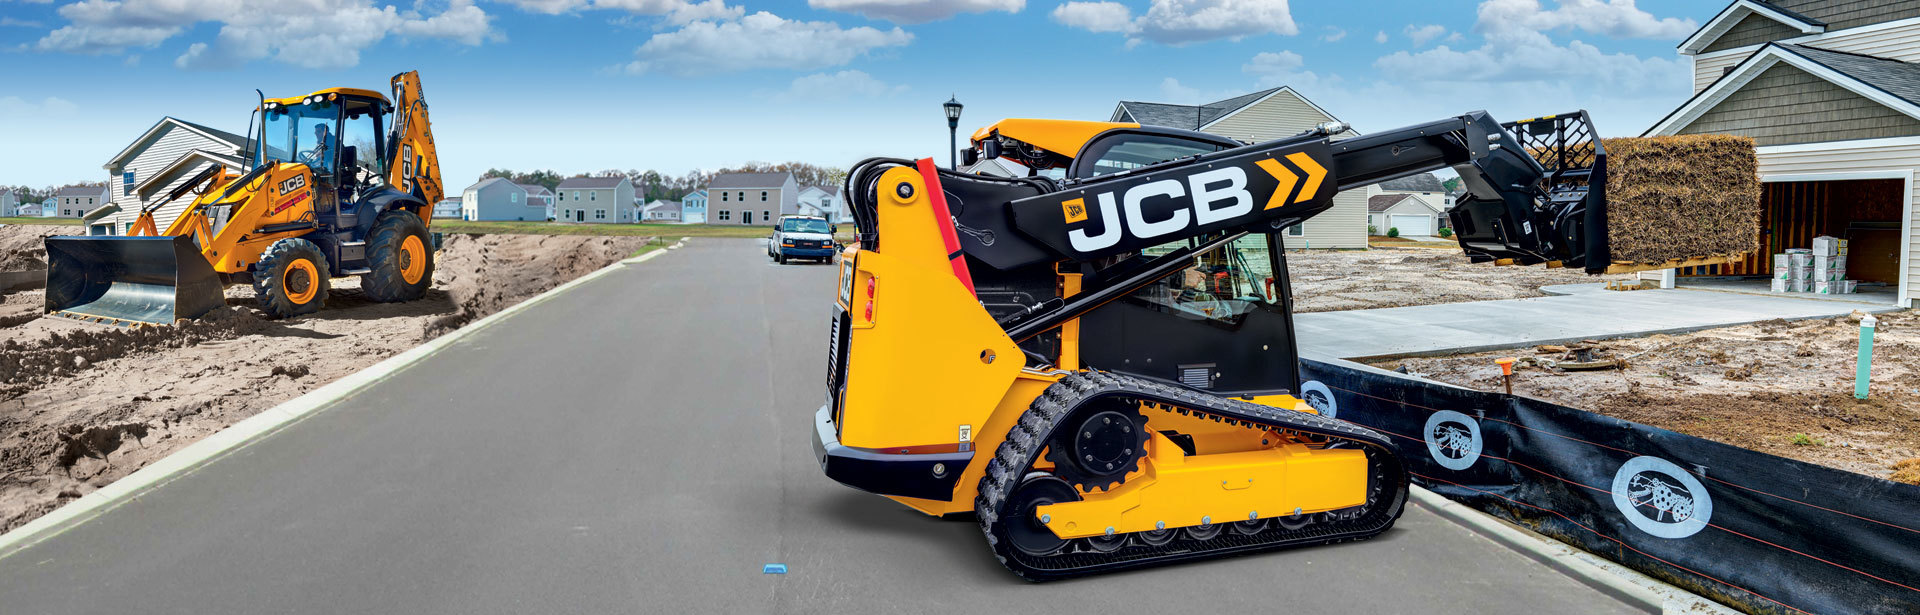 JCB Teleskid Skid Steer in Chicago, IL